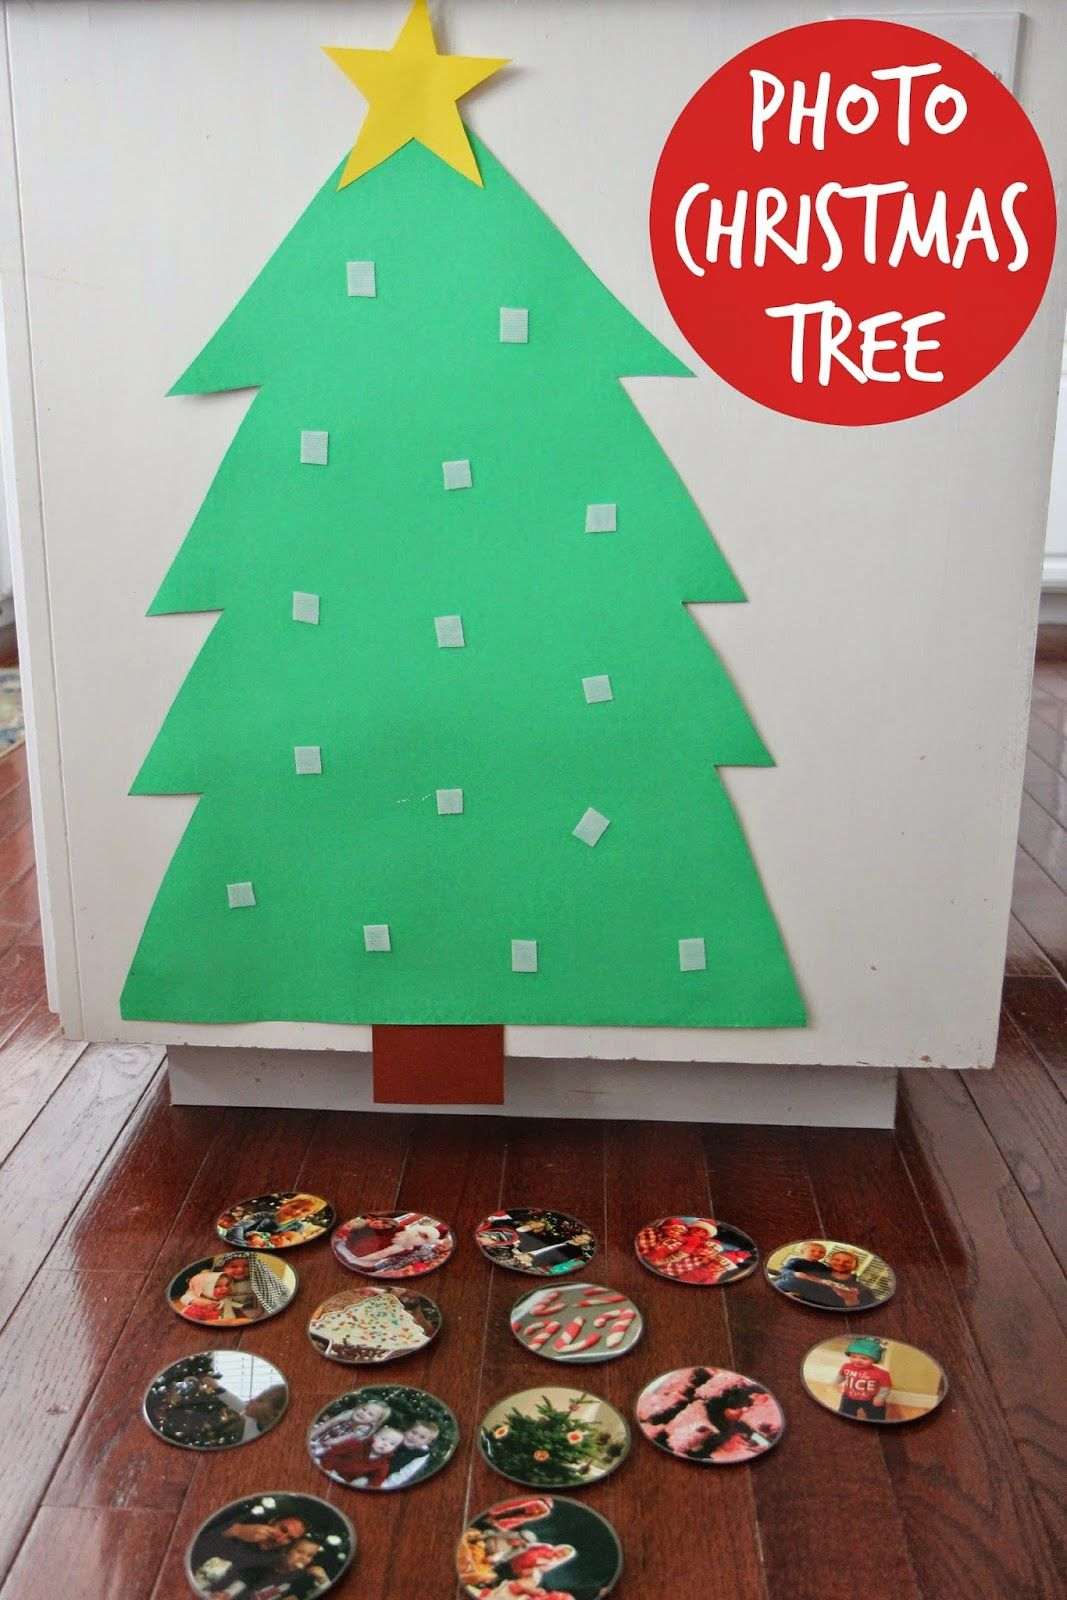 Build a Photo Christmas Tree for Babies